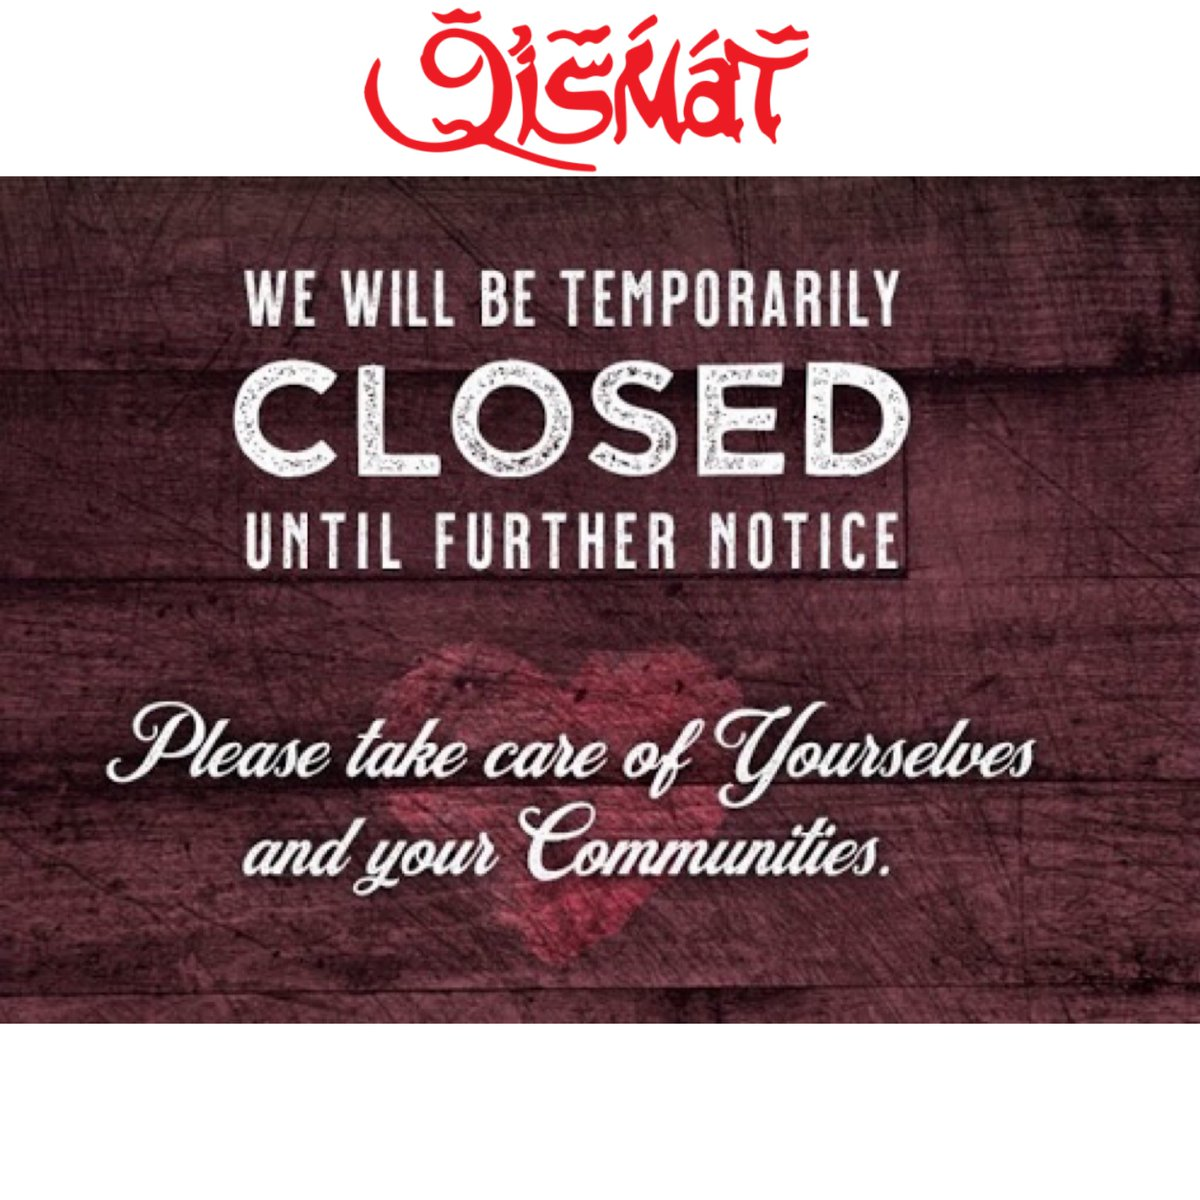 We fully understand the need to play our part in defeating the spread of Covid19 and the safety of our staff and customers is of course of paramount importance. Therefore we have come to the difficult decision to close our restaurant temporarily as of 8:30pm (tonight) 23rd March https://t.co/WqWklwBcgi